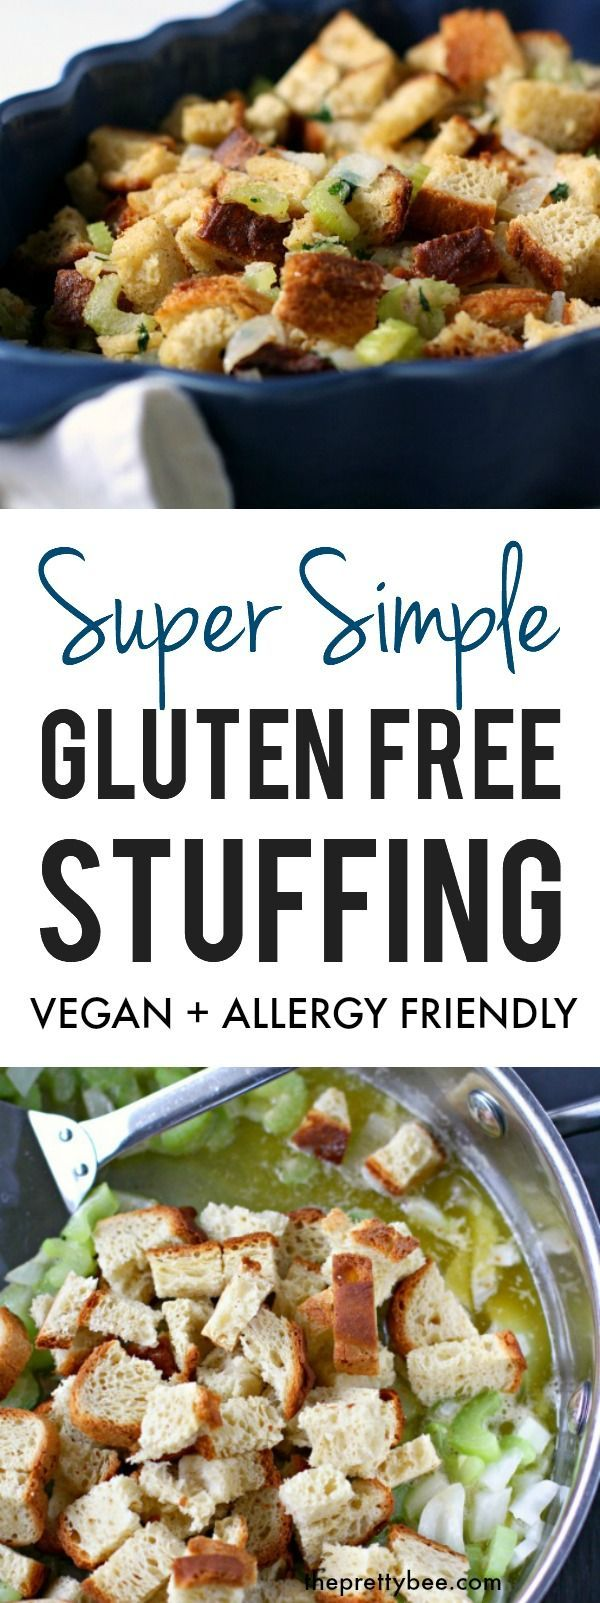 Super Simple Gluten Free Bread Stuffing Is An Easy And Delicious Side Dish F Gluten Free Stuffing Gluten Free Thanksgiving Recipes Gluten Free Stuffing Recipes